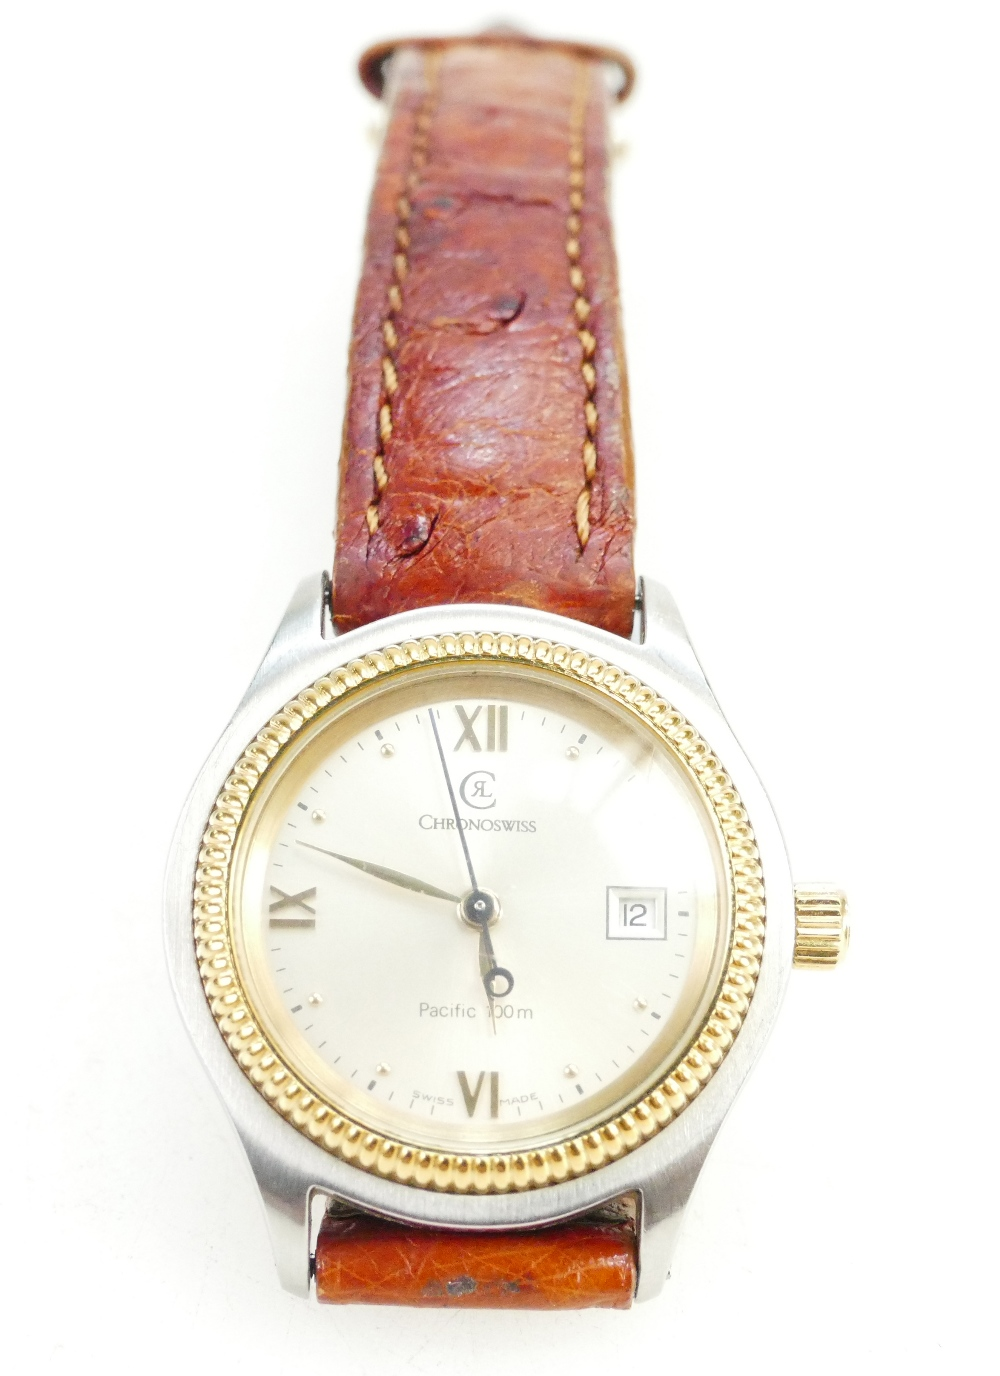 Lot 1095 - Ladies Chronoswiss Ladies wristwatch with brown leather strap,